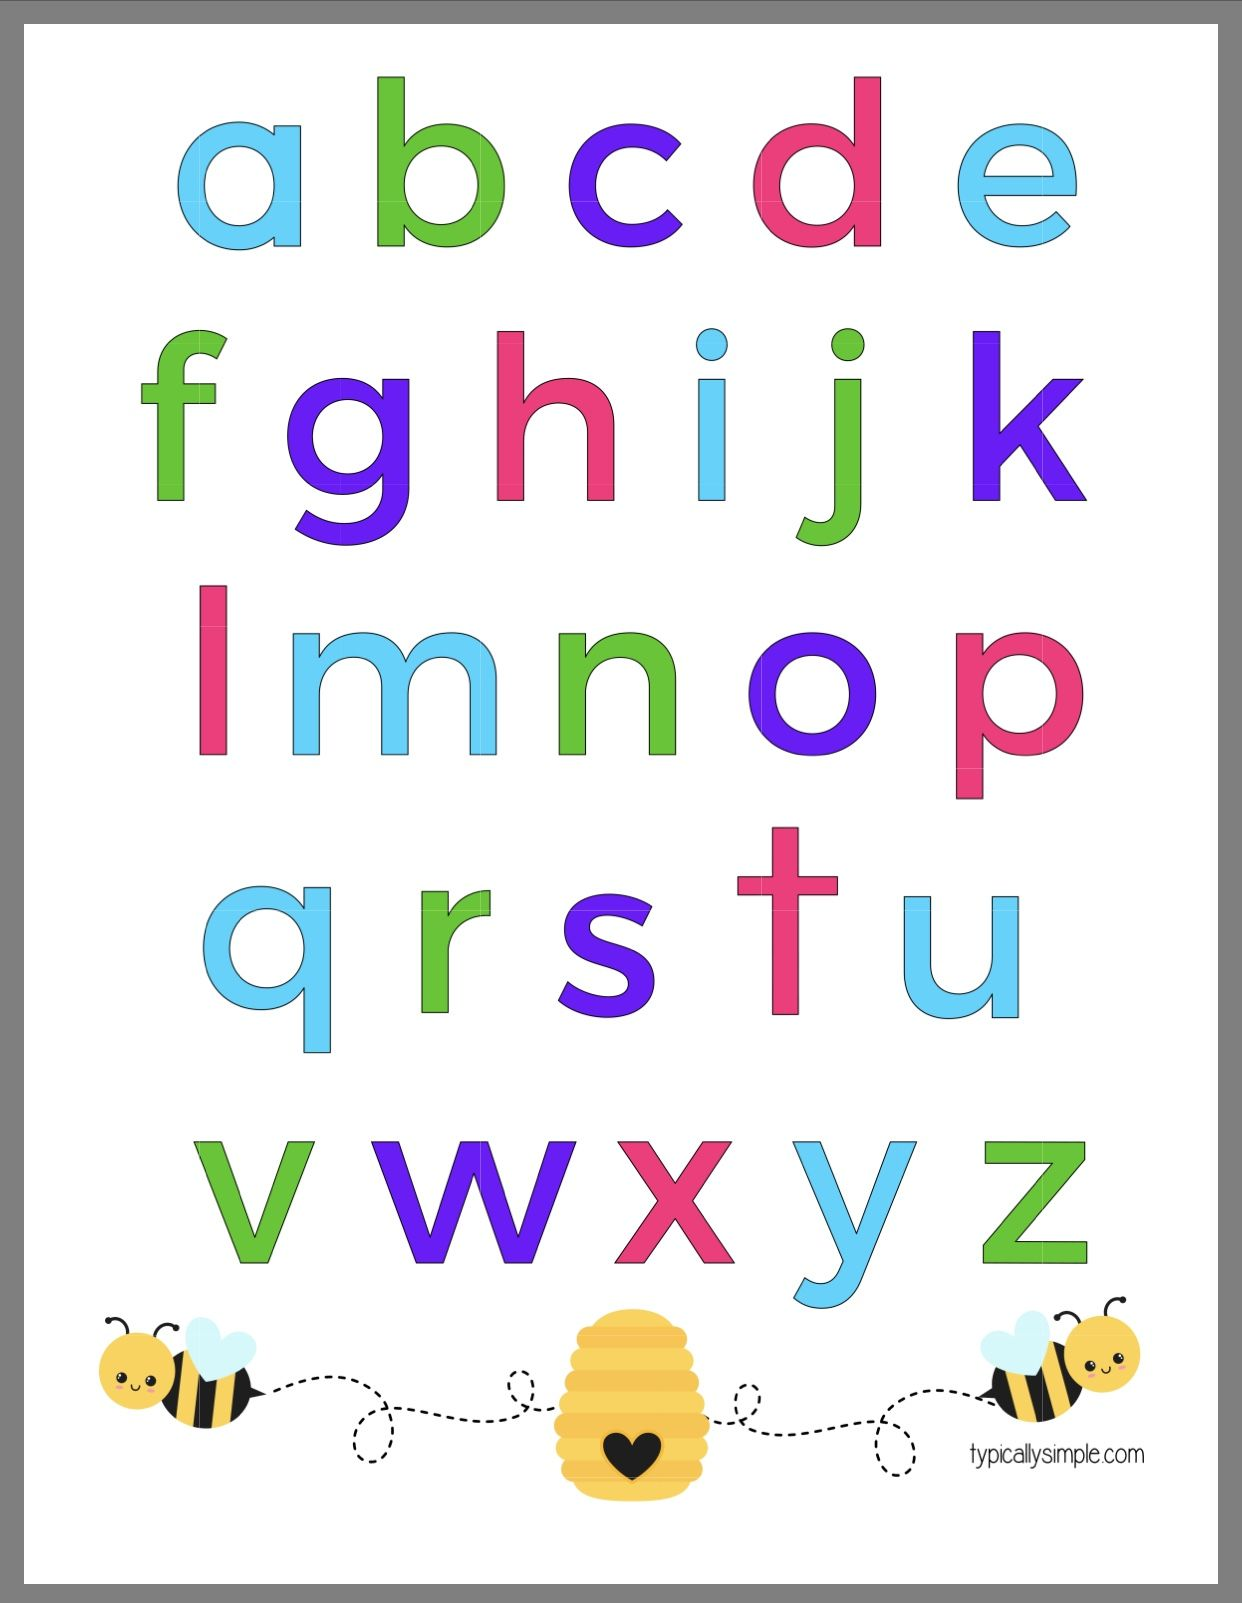 Learning Worksheets Image By Lay Lay Merriweather On